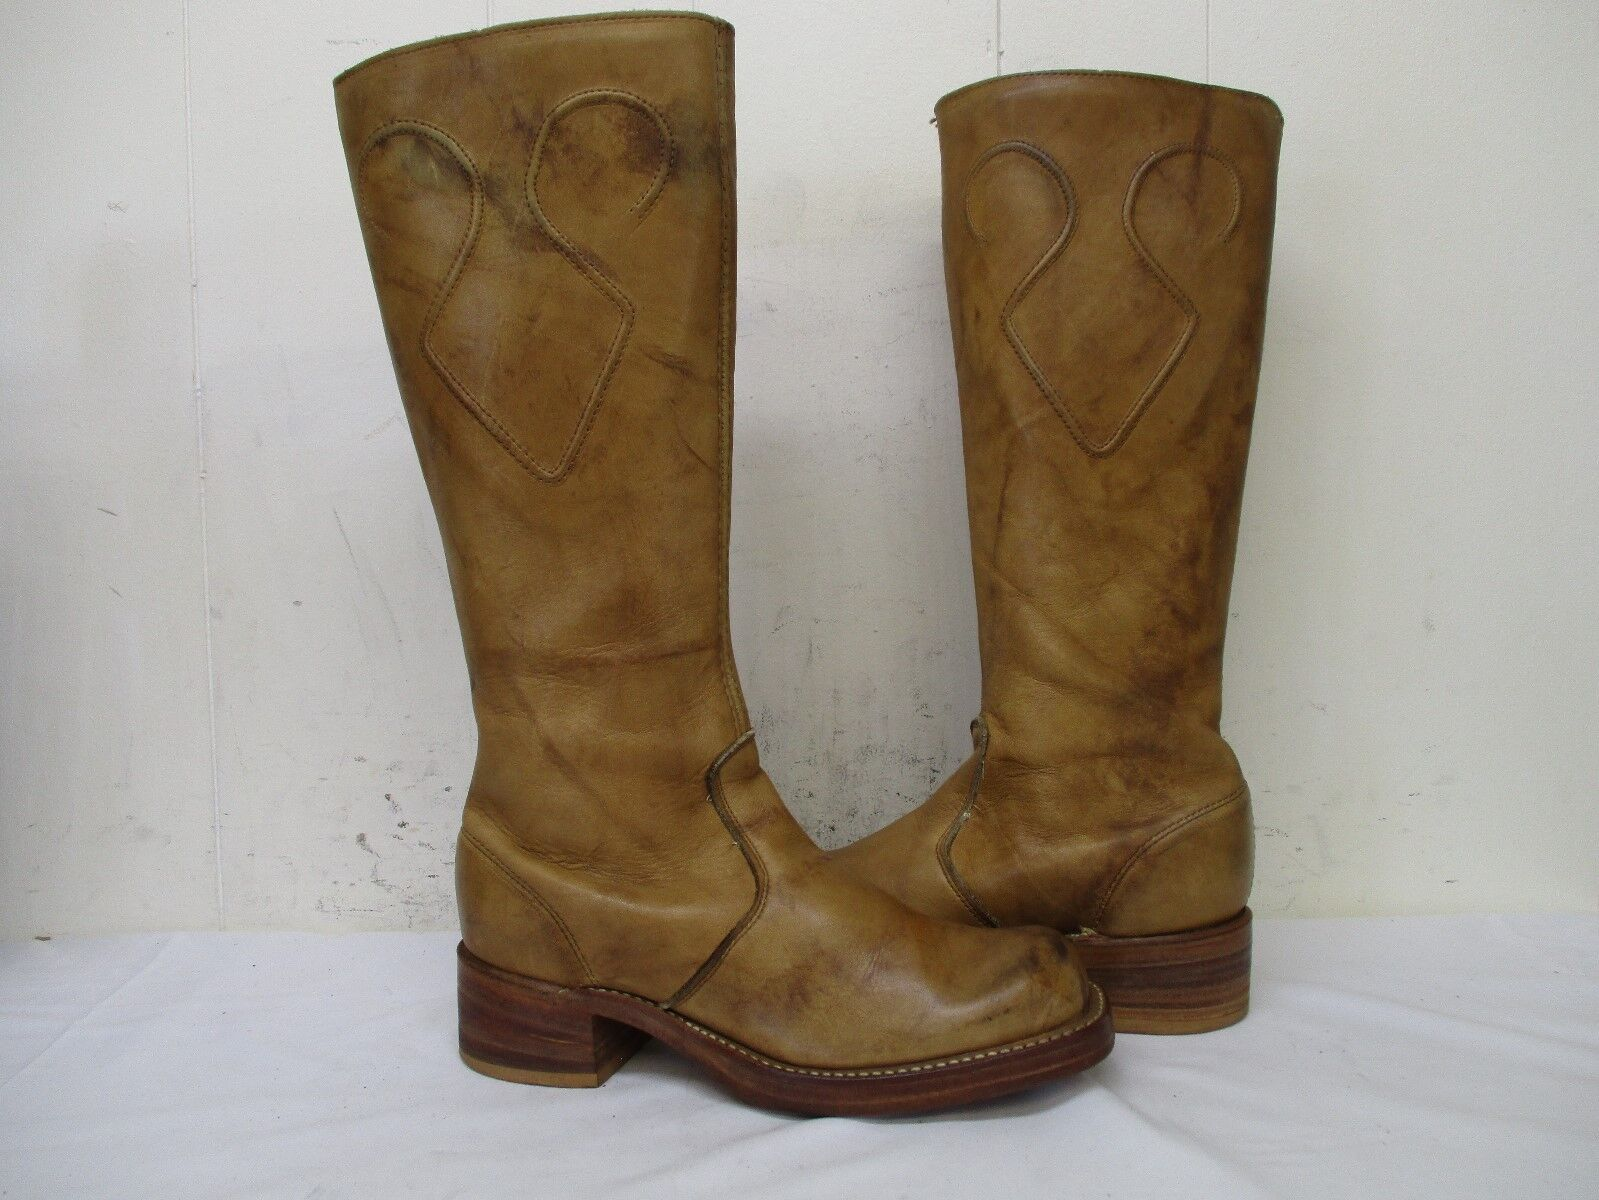 Marble Tan Leather Zip Campus Boots Womens Size 6.5 M Style 7632 USA